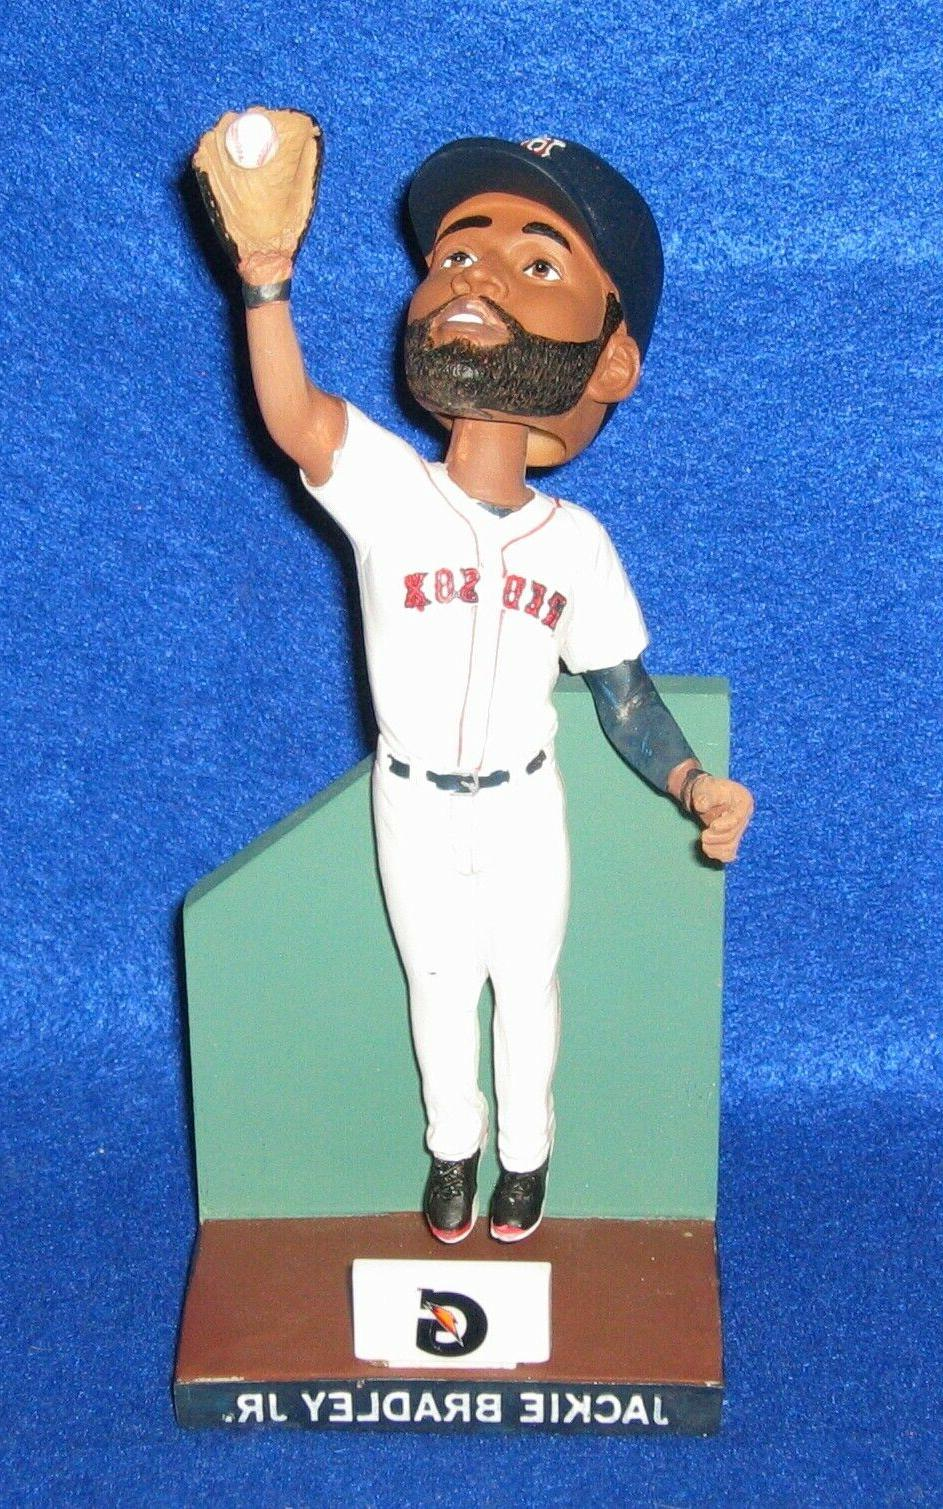 2018 Jr. Boston Bobblehead Figure P44